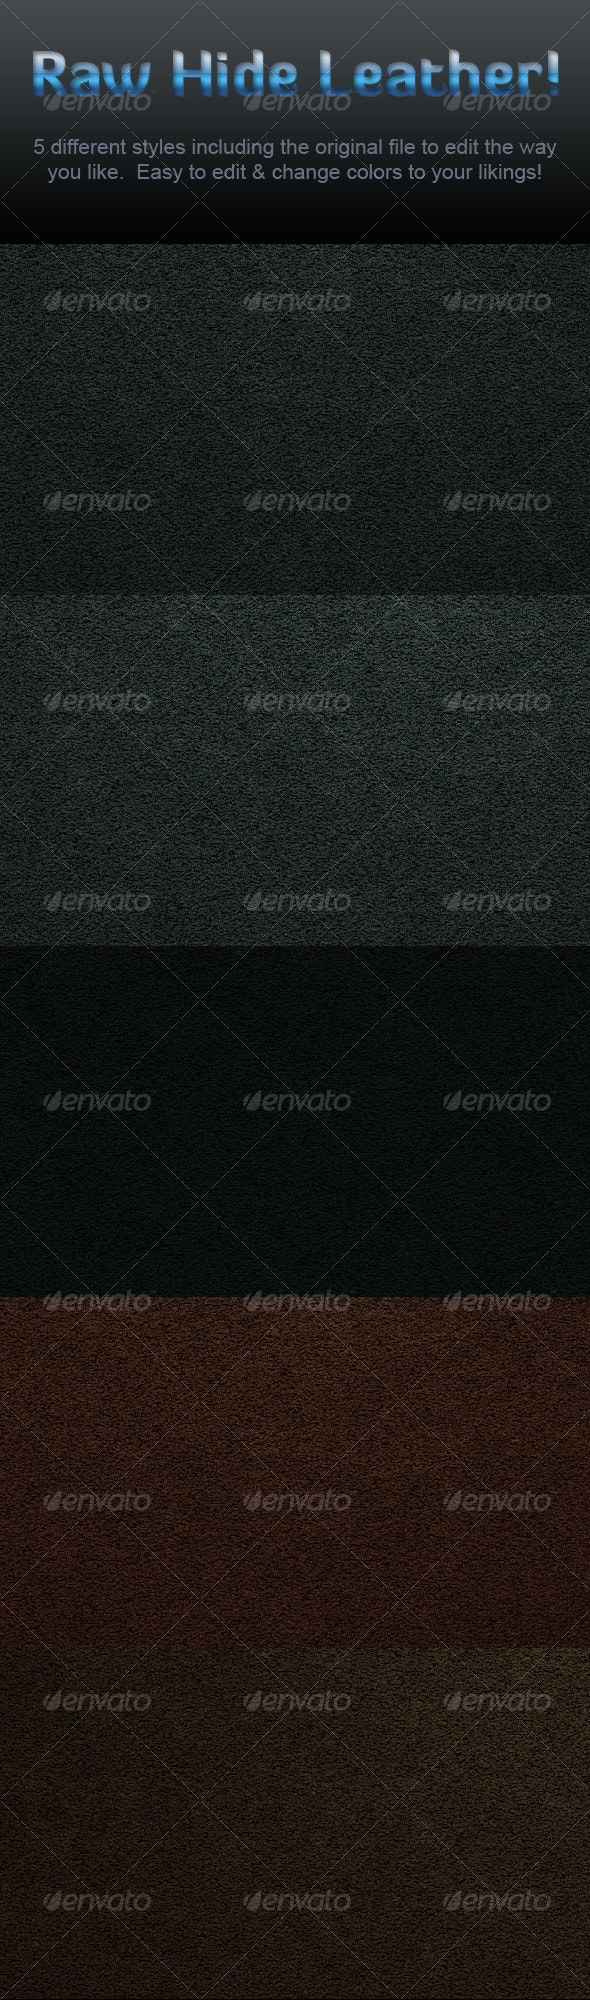 Leather Backgrounds - Backgrounds Graphics